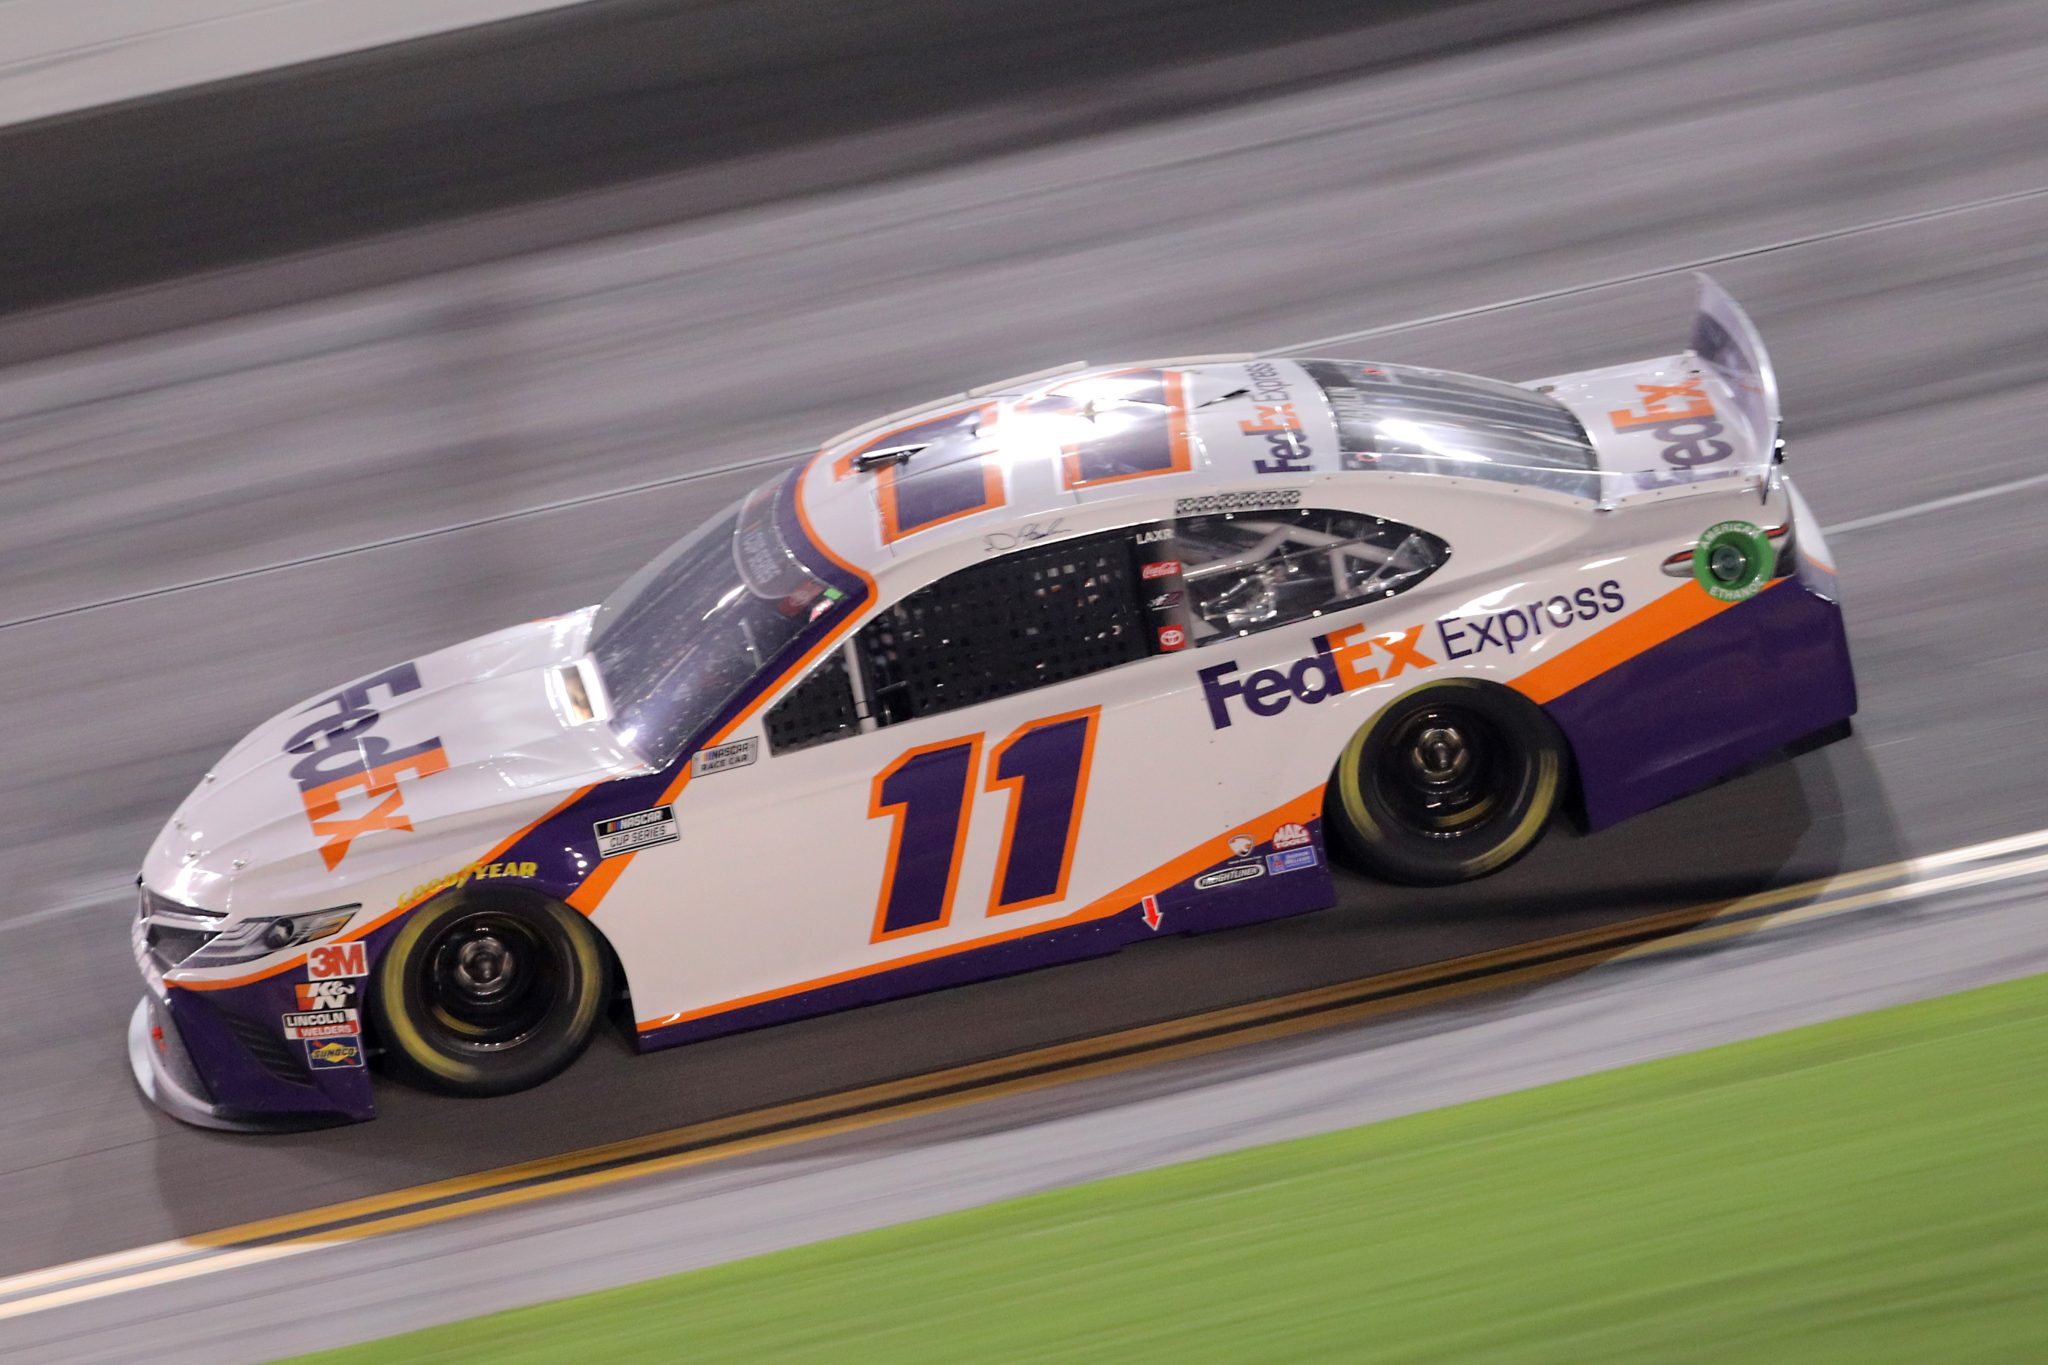 DAYTONA BEACH, FLORIDA - AUGUST 29: Denny Hamlin, driver of the #11 FedEx Express Toyota, races during the NASCAR Cup Series Coke Zero Sugar 400 at Daytona International Speedway on August 29, 2020 in Daytona Beach, Florida. (Photo by Chris Graythen/Getty Images) | Getty Images